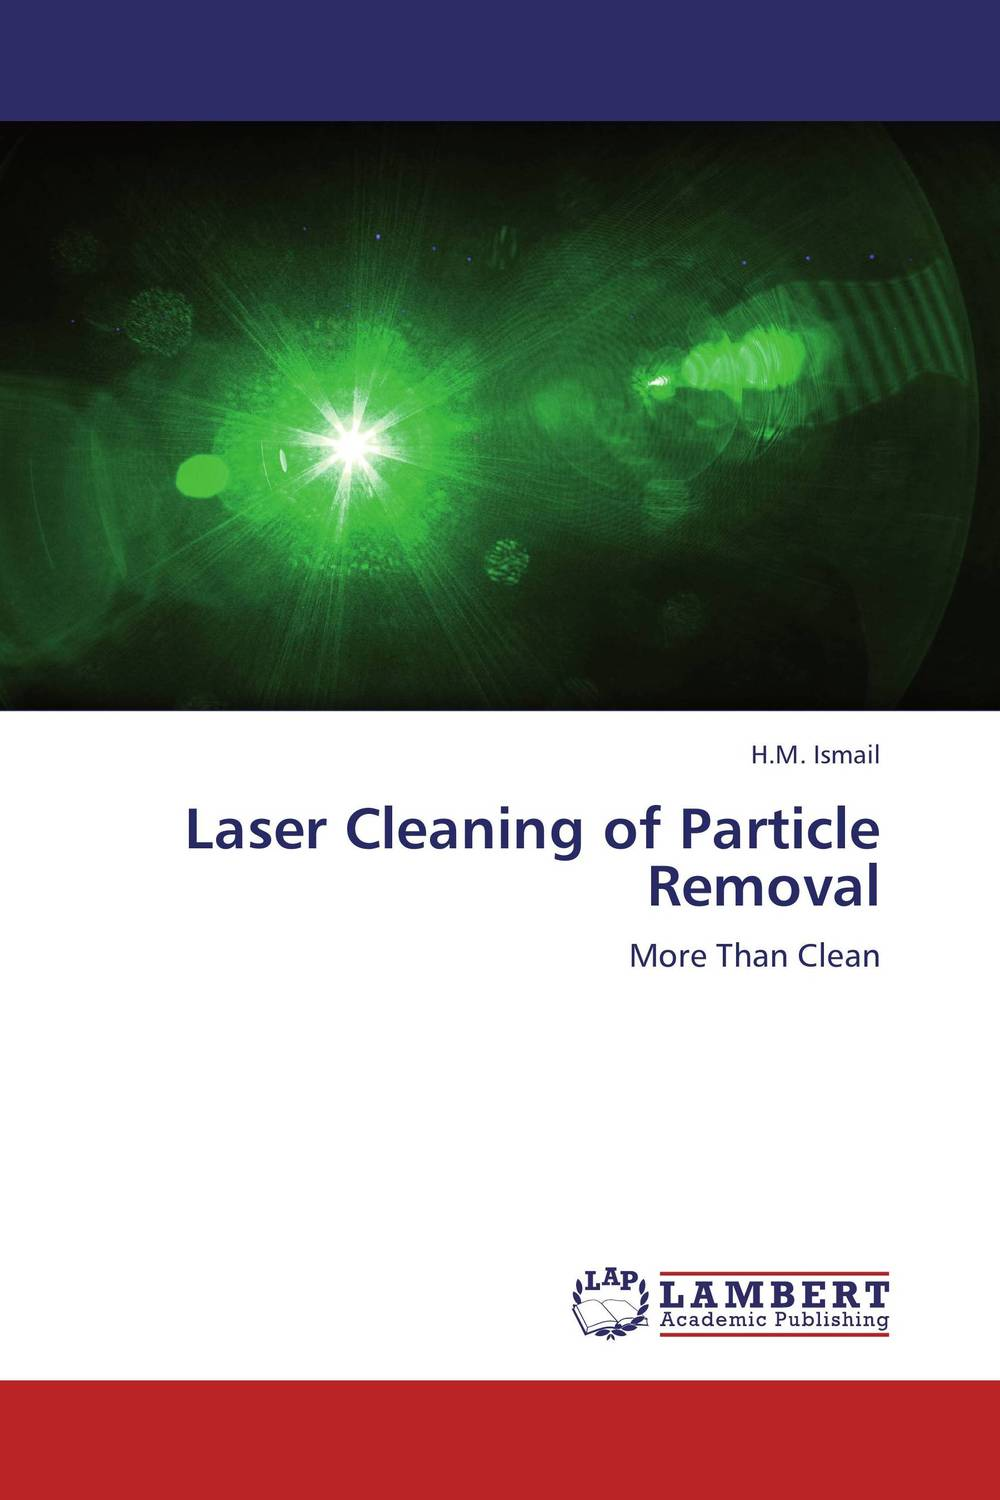 Laser Cleaning of Particle Removal developments in surface contamination and cleaning methods for removal of particle contaminants